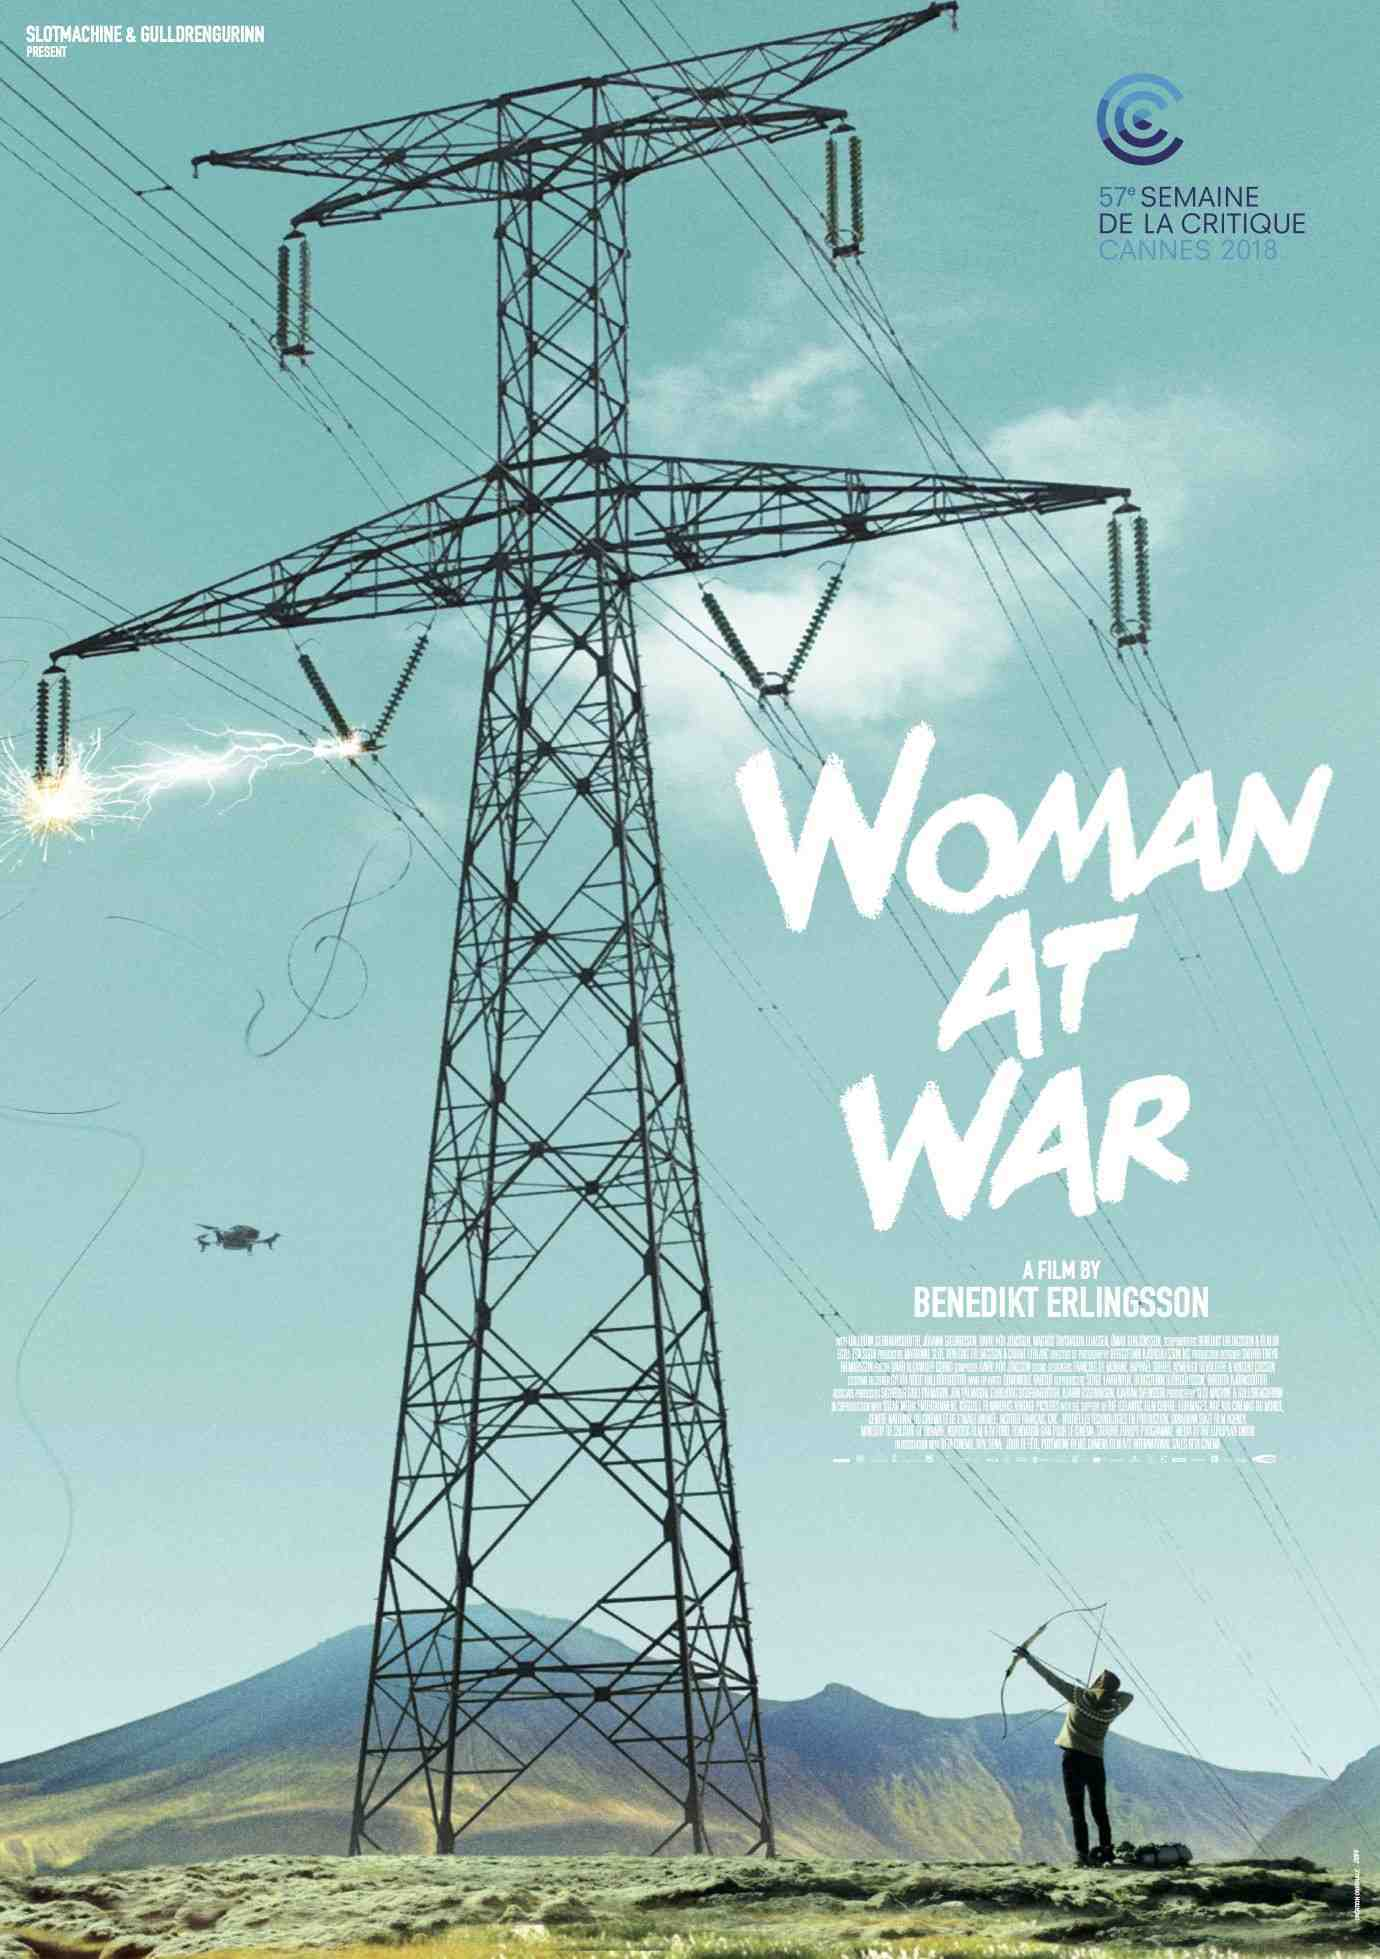 Woman at War  by  Benedikt Erlingsson